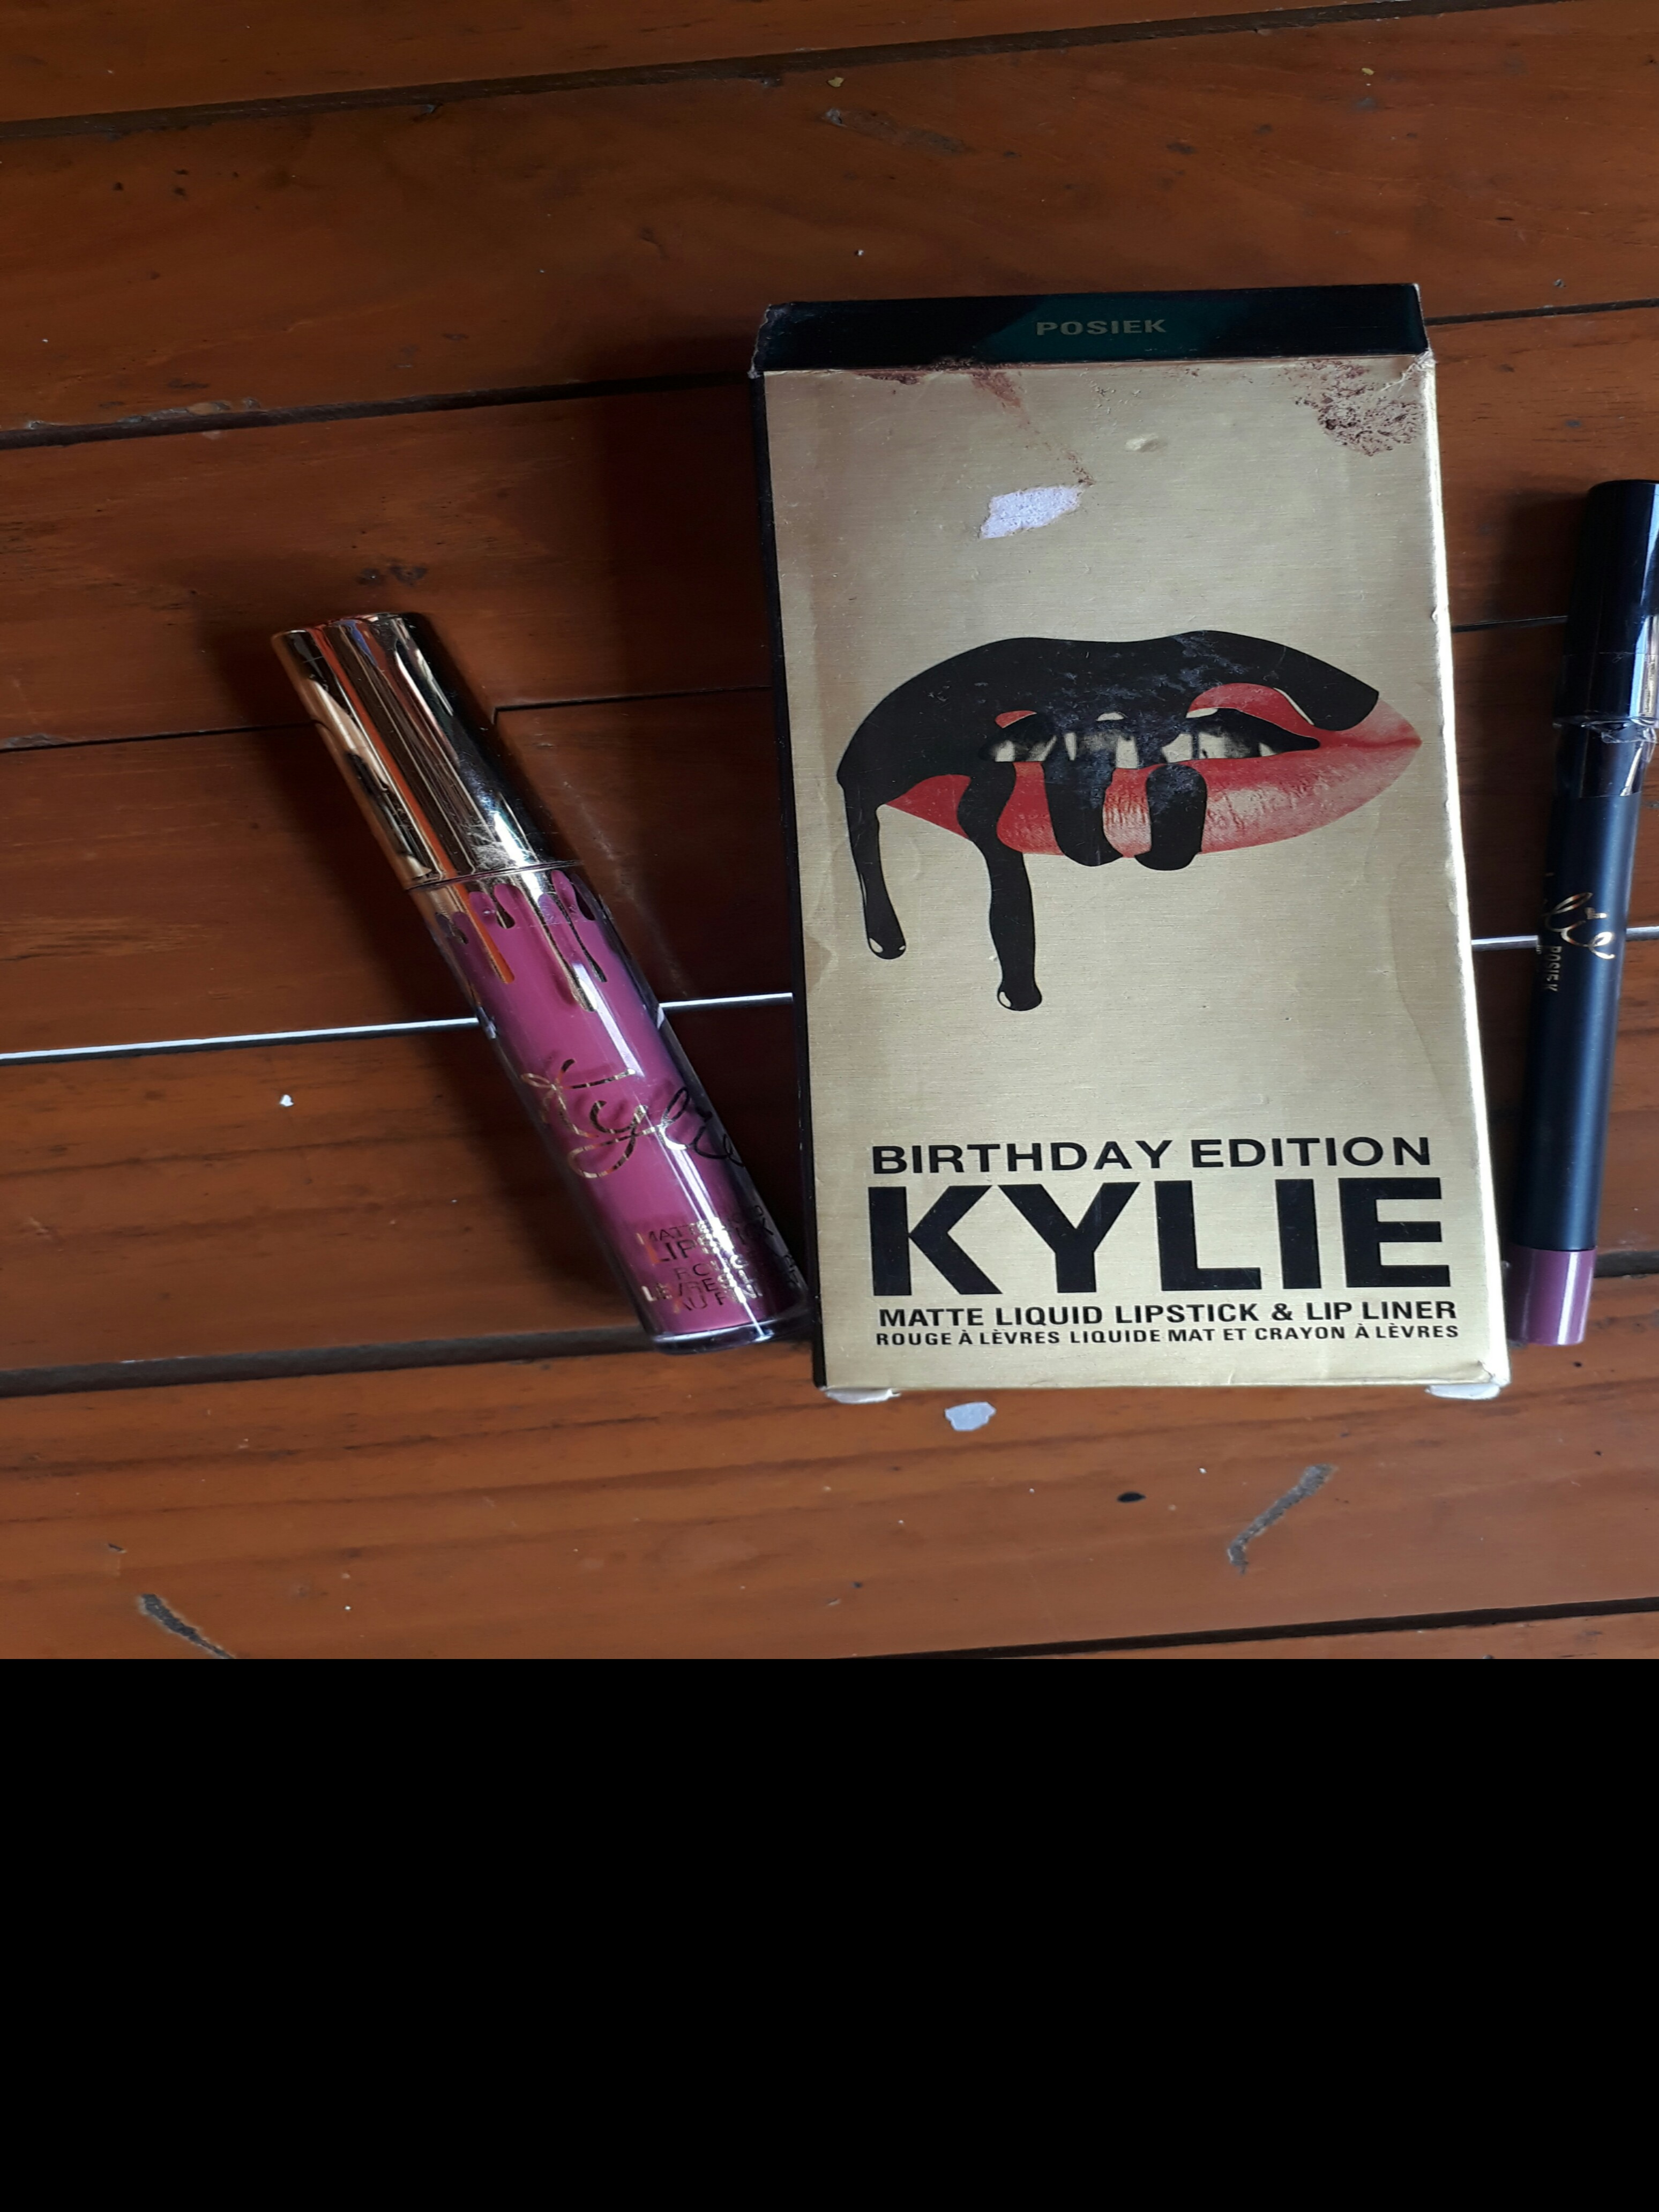 Kylie birthday edition 2 in 1